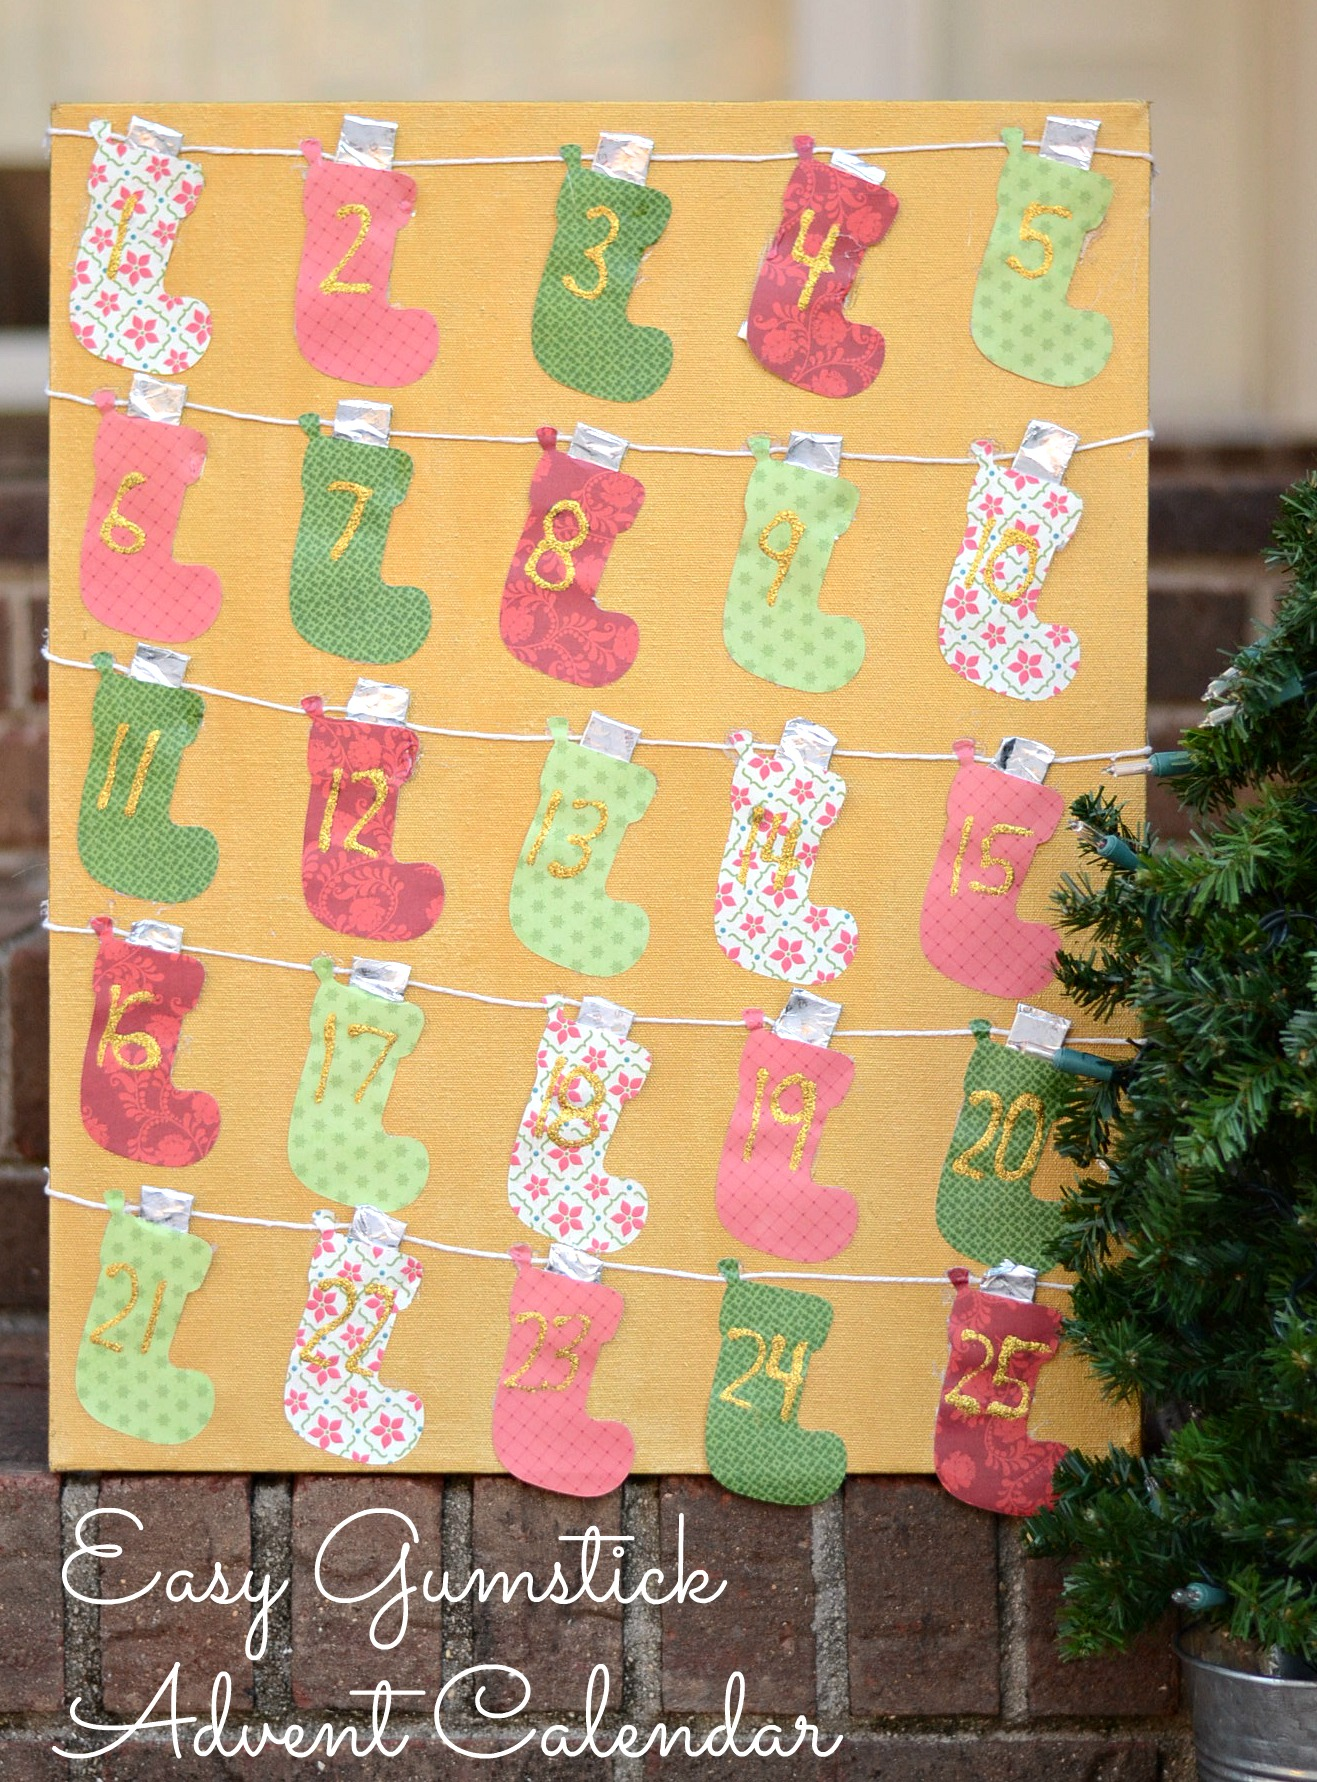 Easy Gum Stick Advent Calendar DIY #GiveExtraGum #shop #cbias